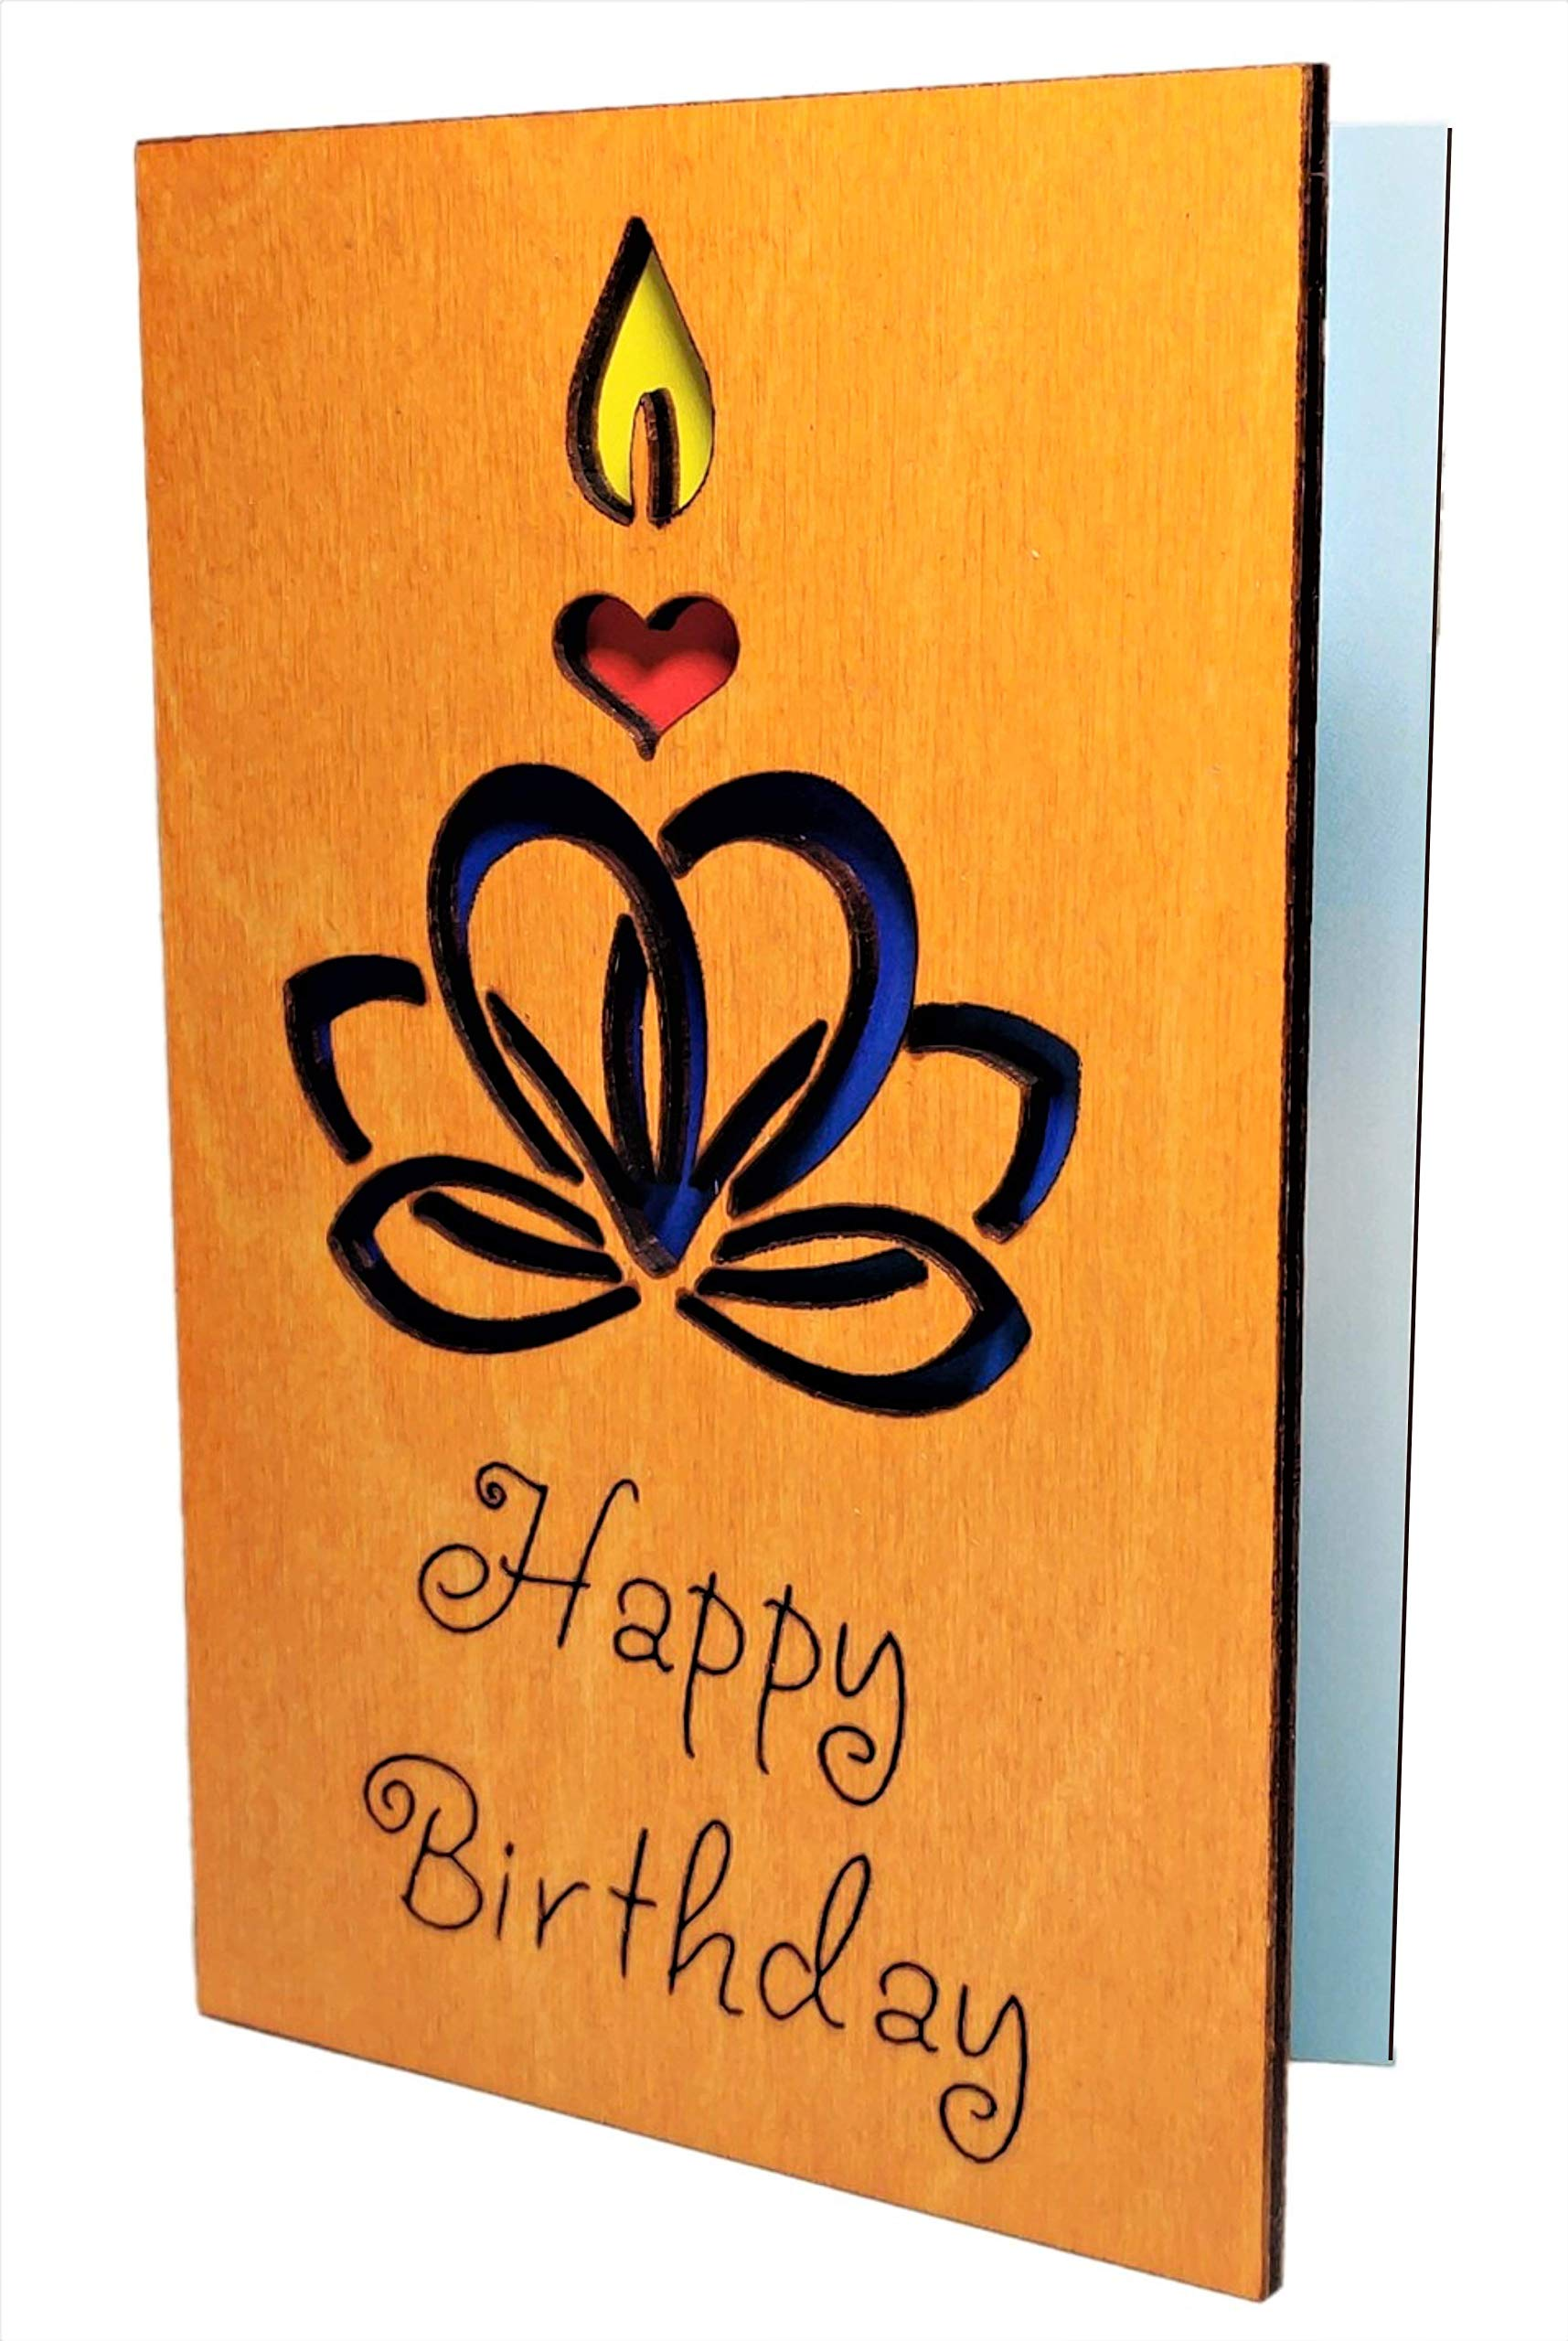 Real Wood Lotus Heart w Candle InspirationalMotivationalGreeting Card Best Happy Birthday Wooden GiftIdea Bday Wishes for Friend Teacher Sis Sister Bro Brother Grandma Grandpa Mom Dad Son Daughter